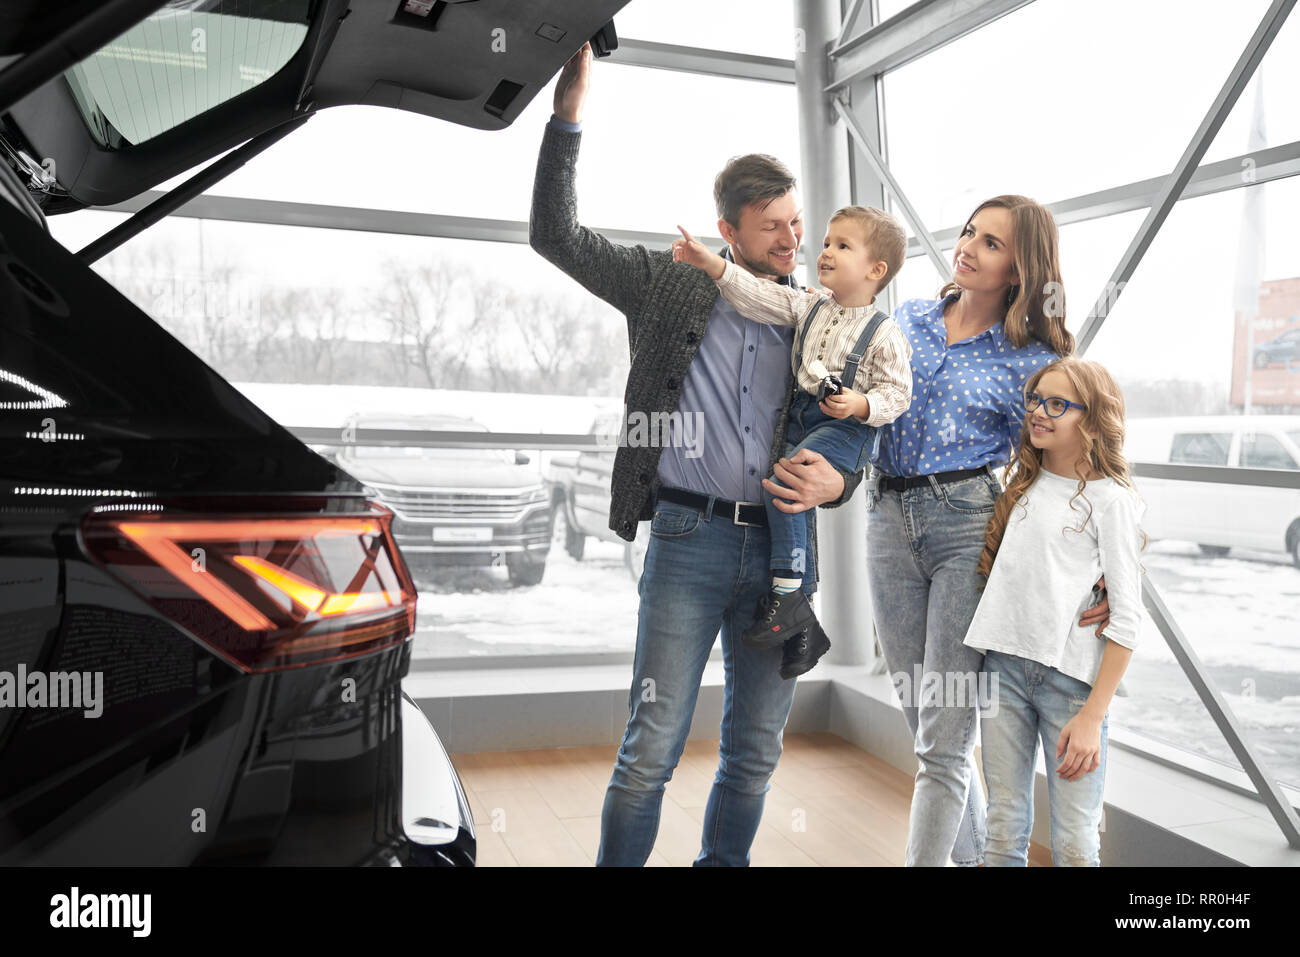 Happy family observing new, expensive black car in modern showroom. Father holding kid on hand, opening car trunk, parents standing with children, smiling, looking at car. - Stock Image